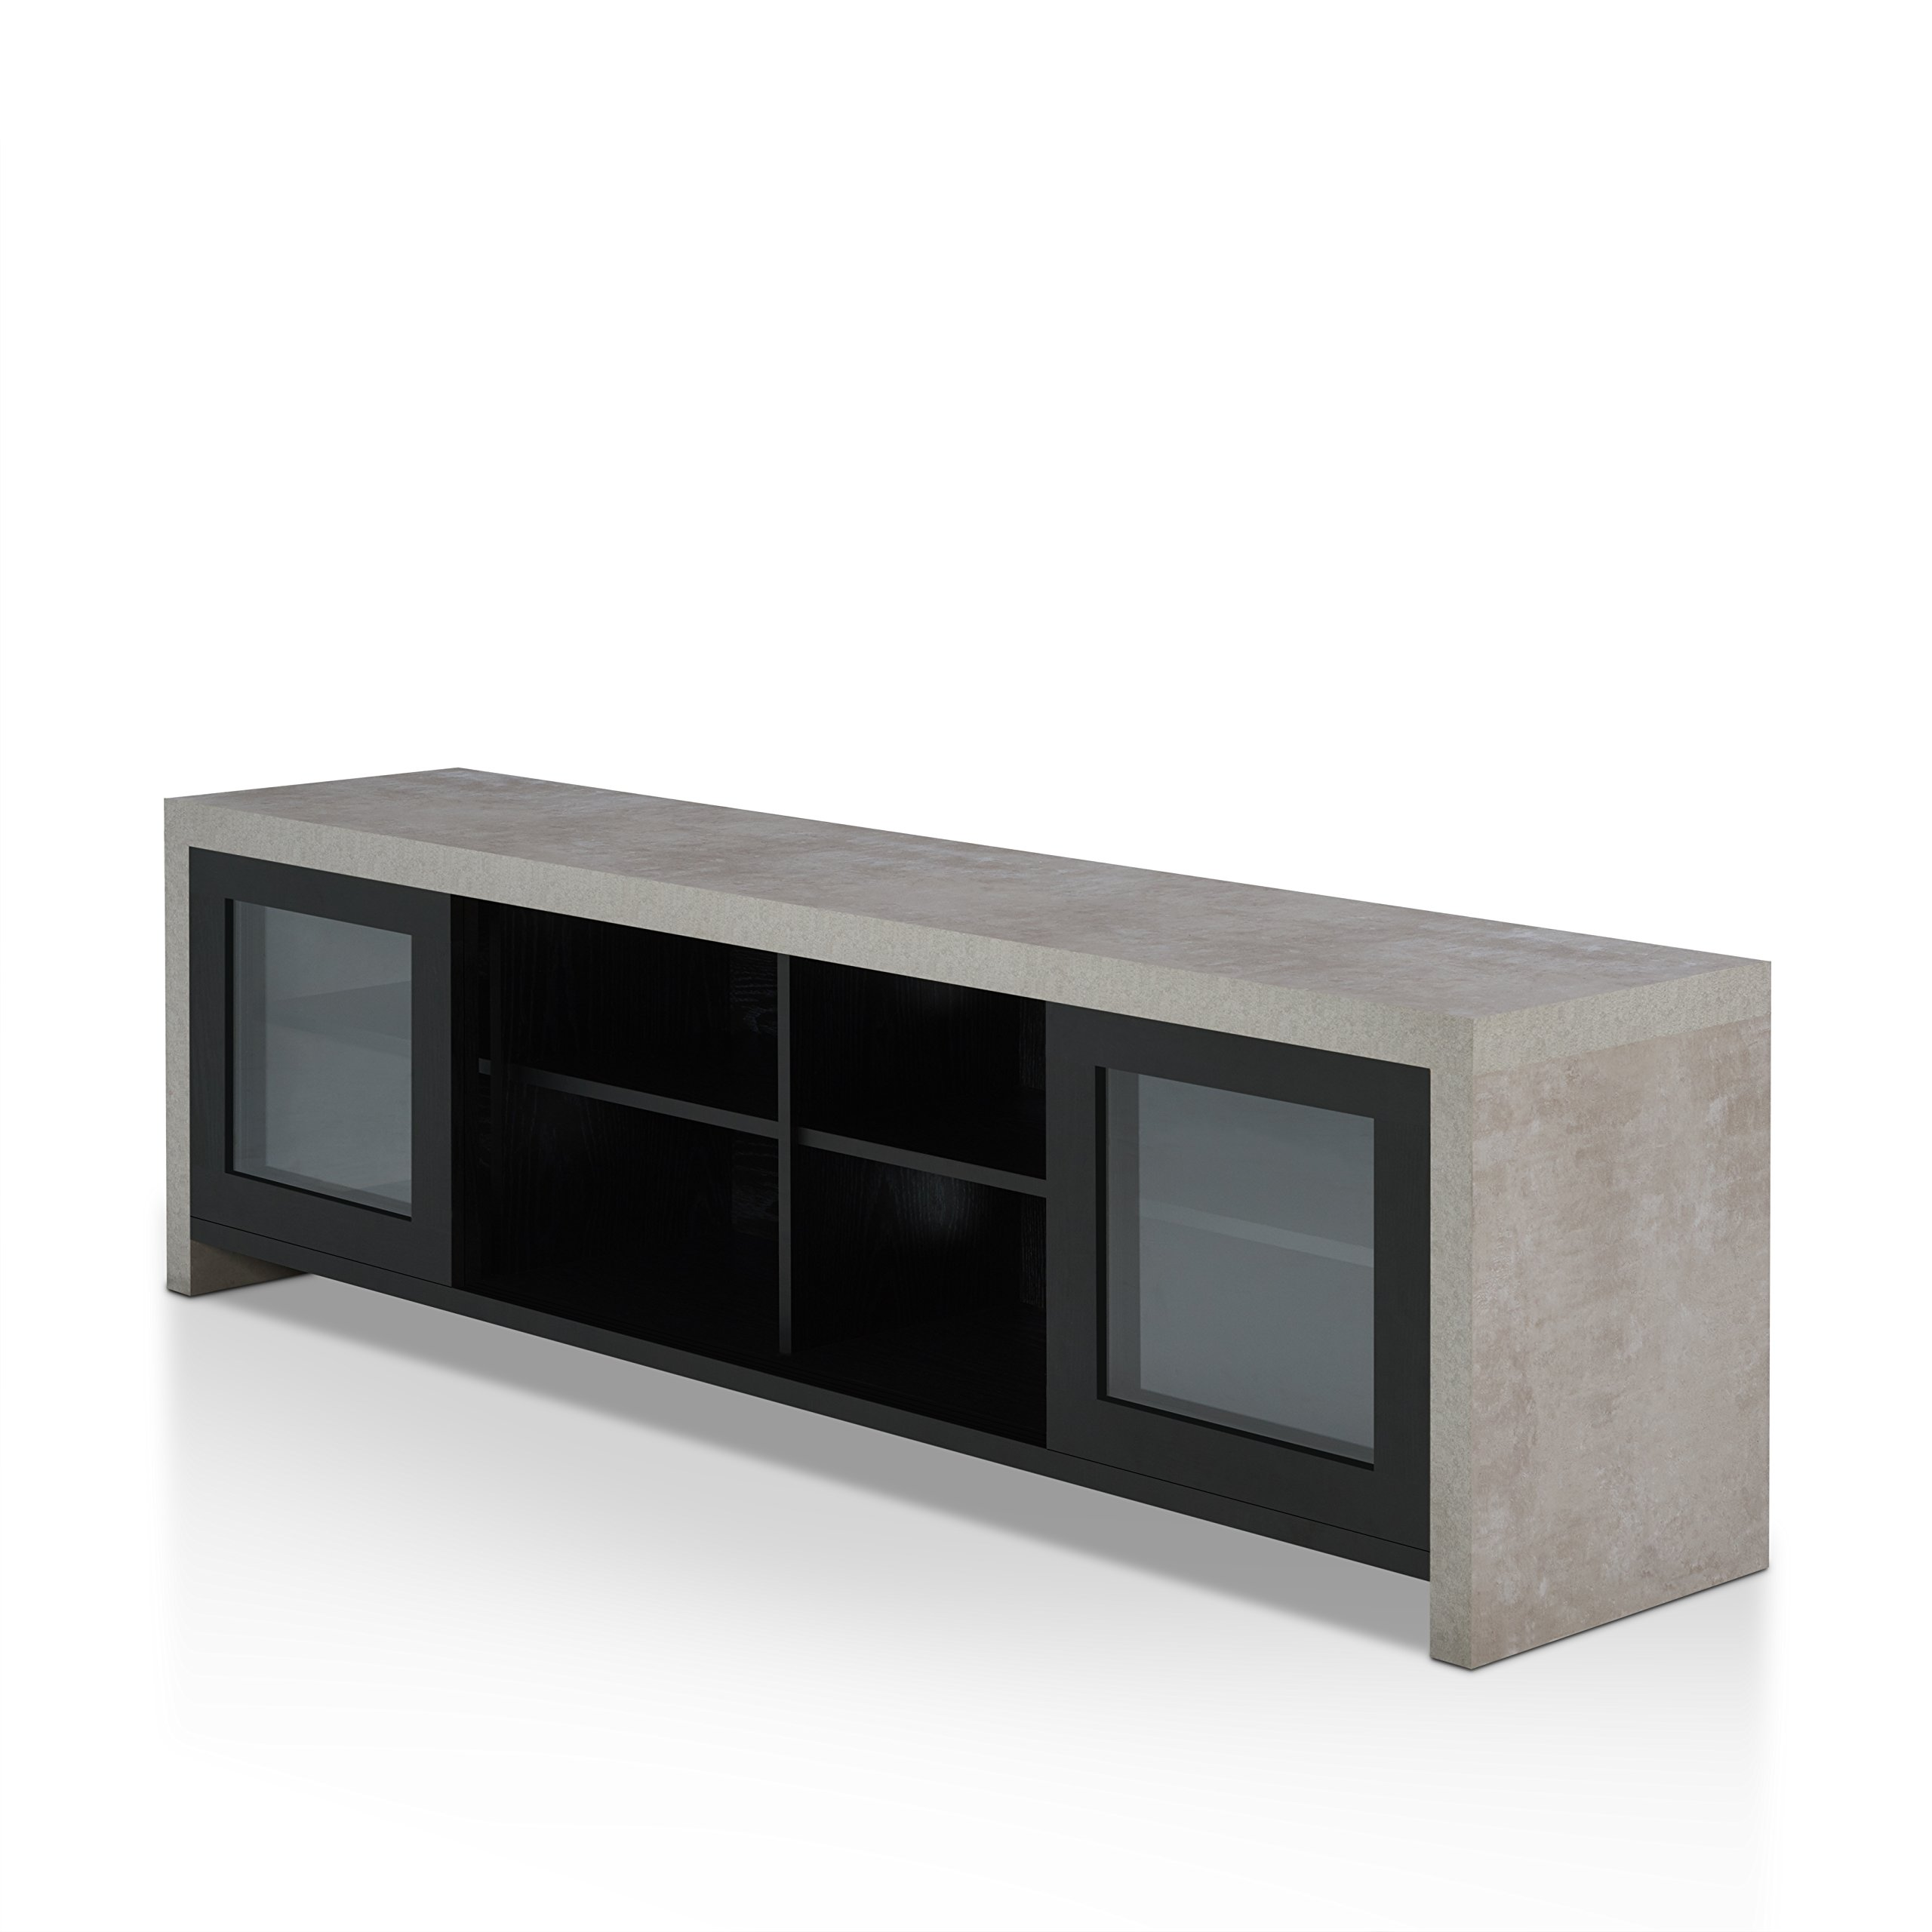 HOMES: Inside + Out FGI-1780C1 Vaice TV Stand Not Applicable, Black by HOMES: Inside + Out